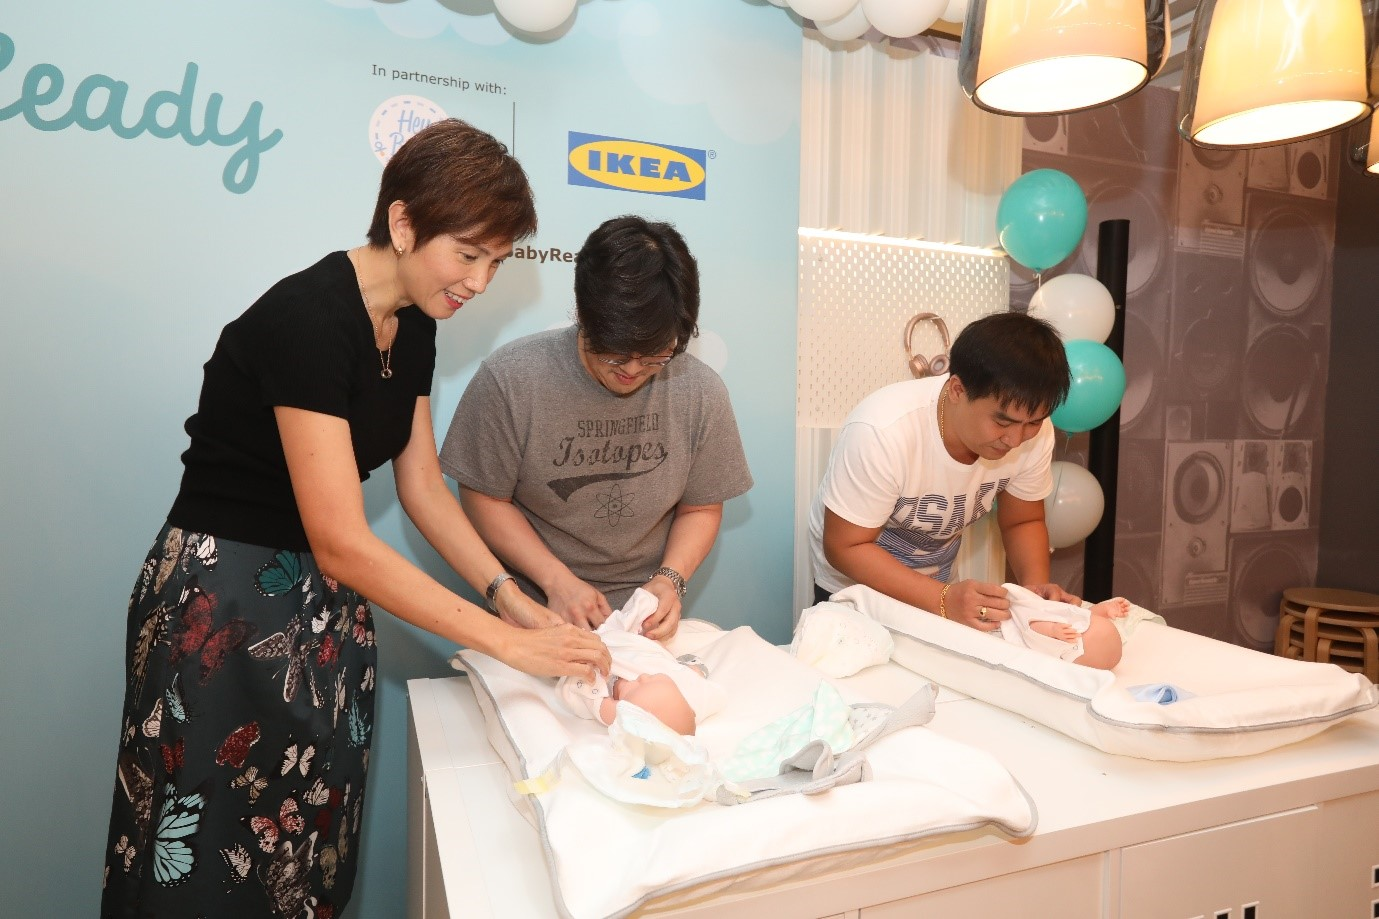 Minister Josephine Teo lending a hand to male contestants who are competing to be the fastest to clean and dress a baby mannequin. The activity encourages fathers to play a more active role in child caring.